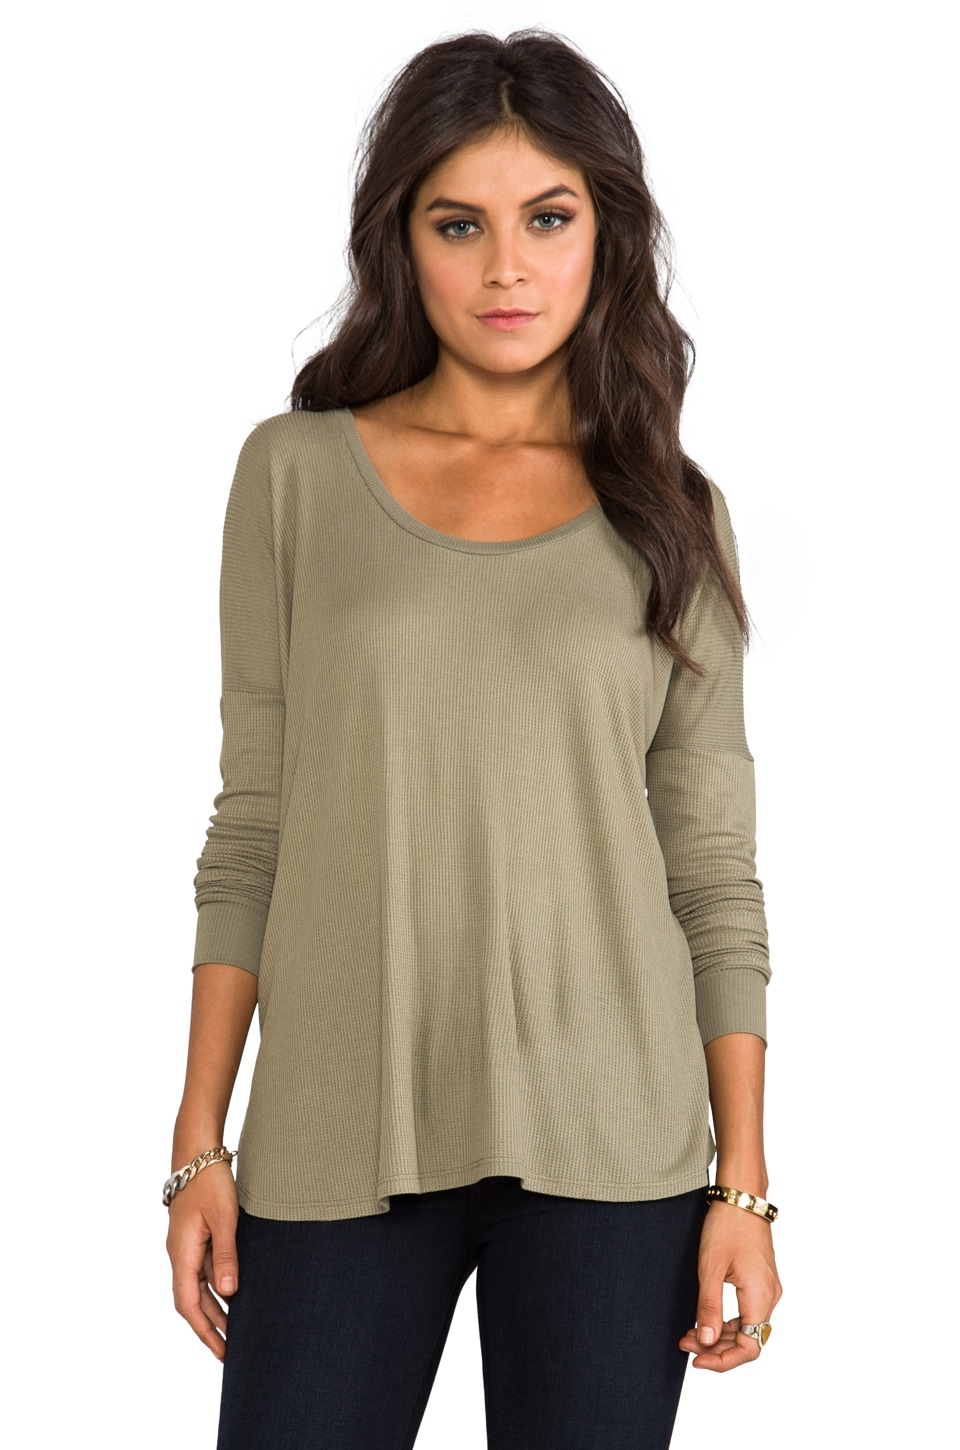 Blue Life Crew Neck Thermal Top in Army